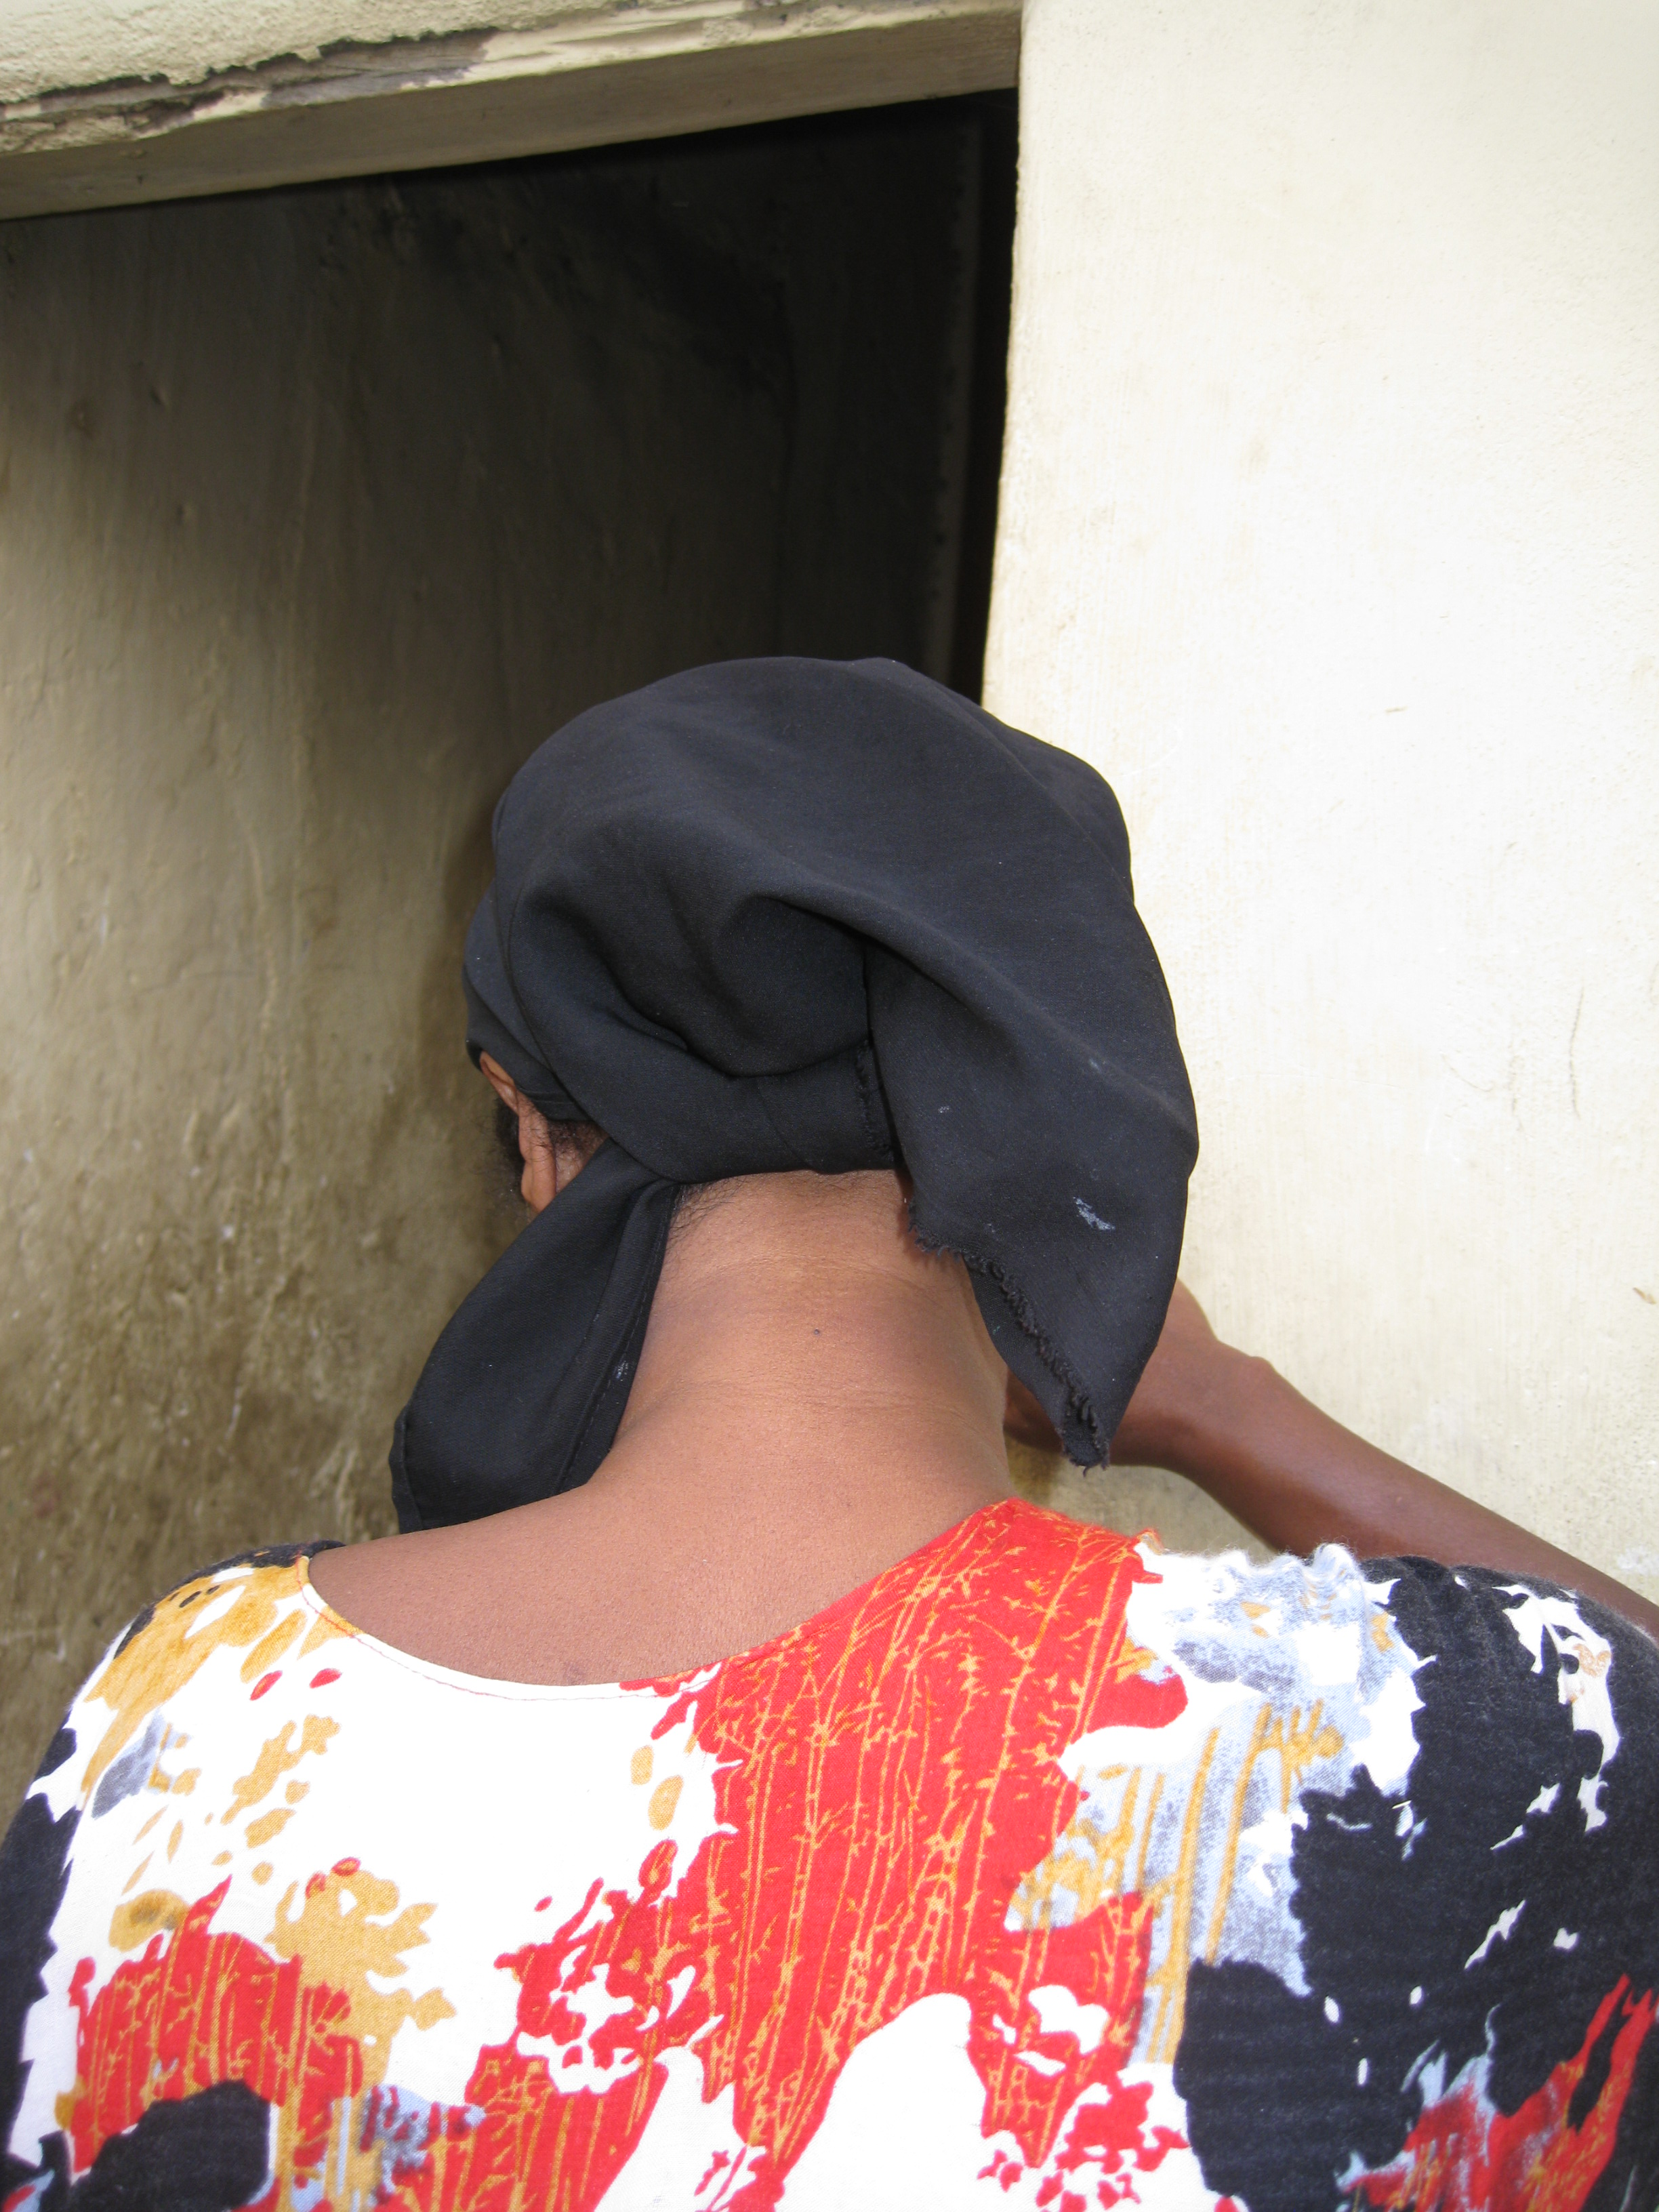 A commercial sex worker in Hargeisa, capital of the self-declared republic of Somaliland in the northwest of Somalia